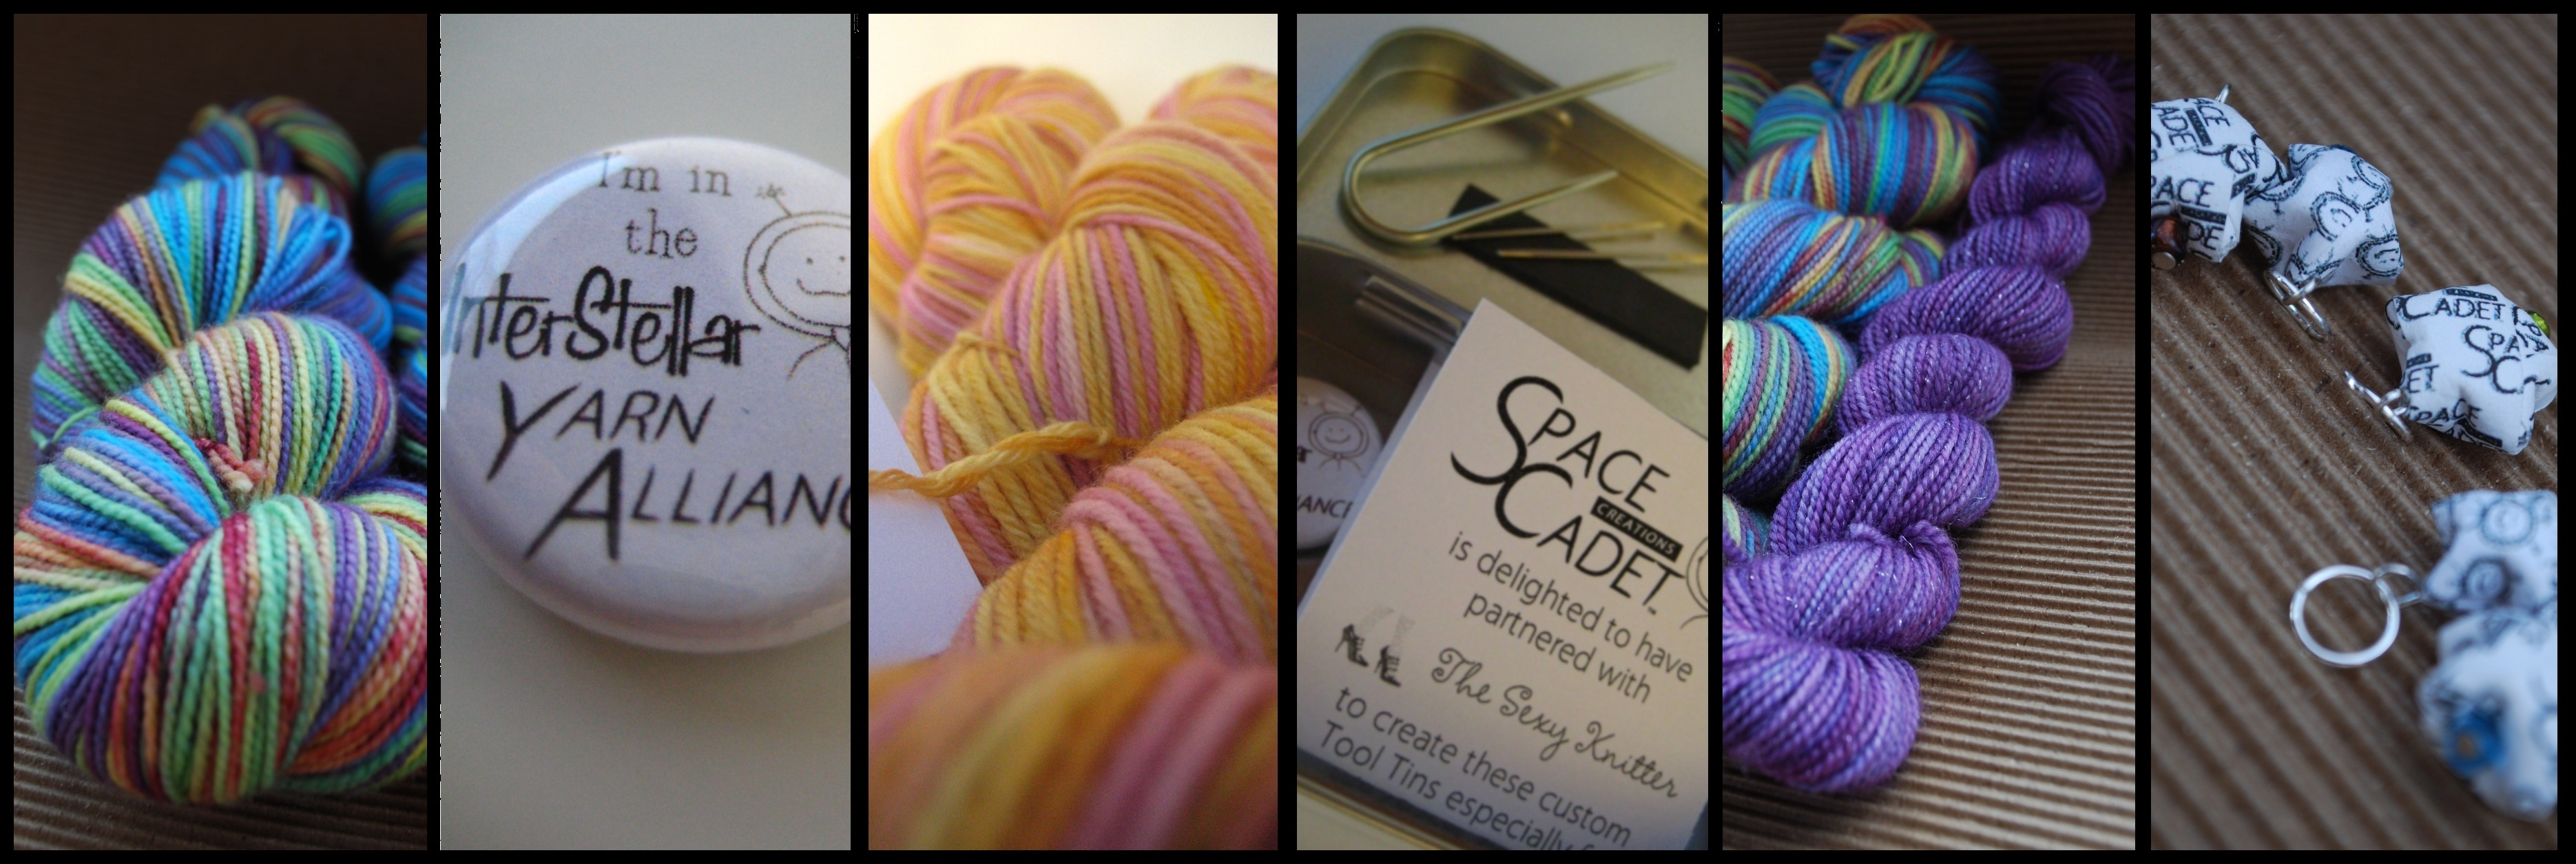 yarn club, yarn, knitting, crochet, sock yarn, indie dyer, hand dyed, space cadet, spacecadet